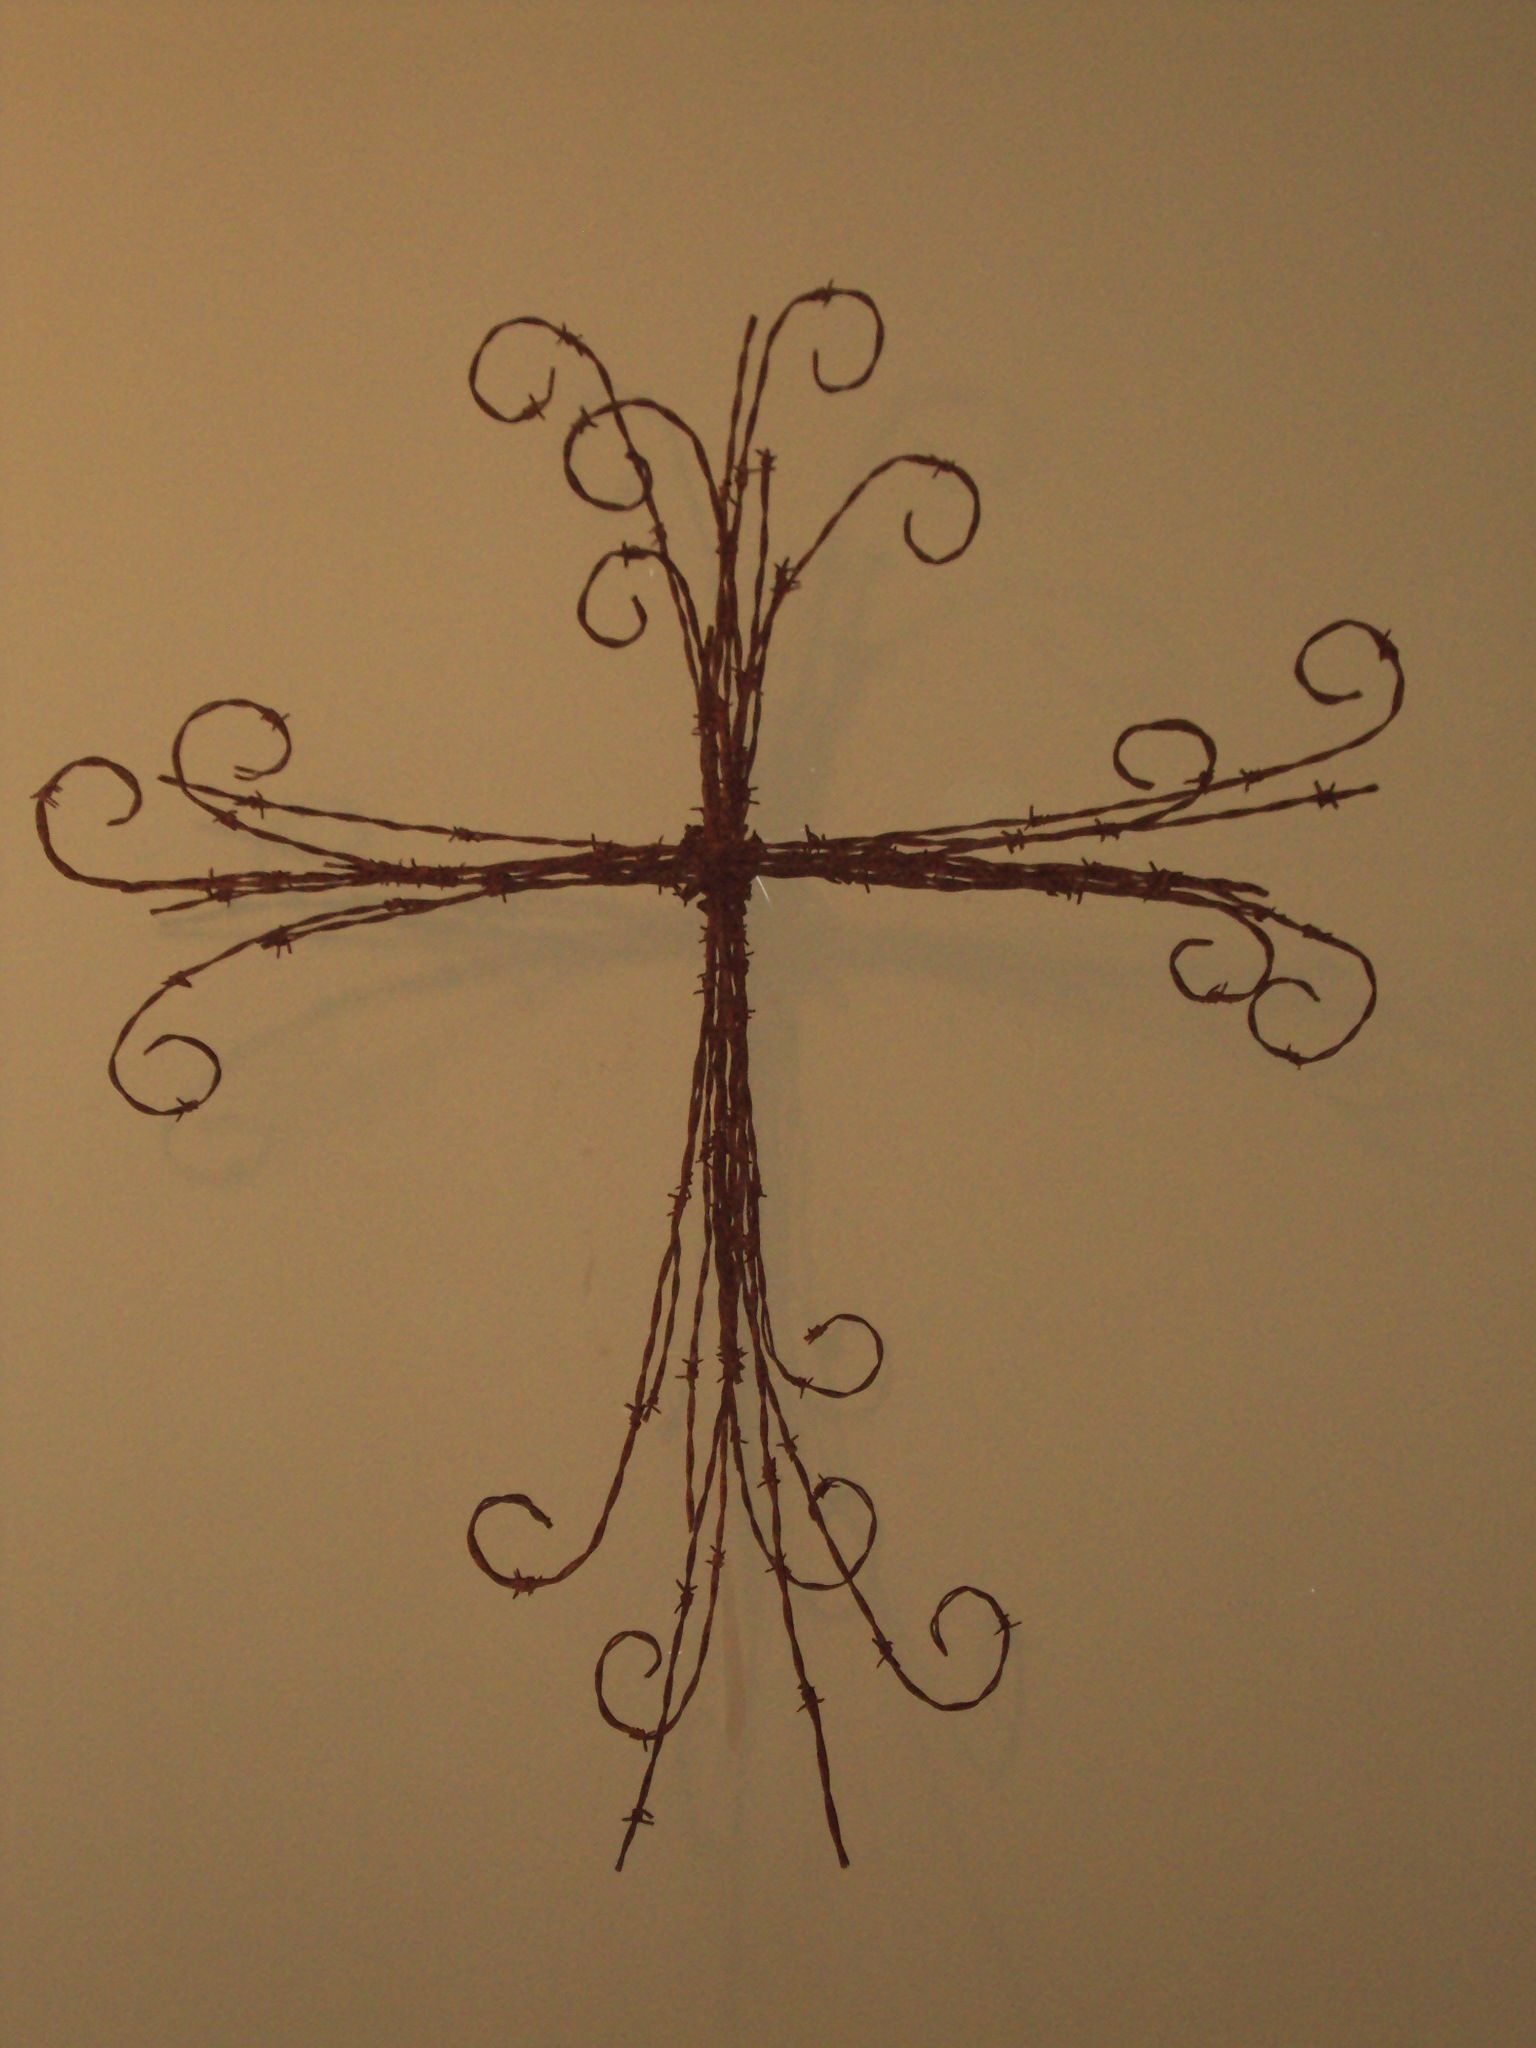 Wire Cross Craft Ideas Center Kenmore 1581320 1325 1336 1347 1946 Sewing Machine Threading Diagram Thicker Barb Crosses Pinterest Rh Com Barbed Art And Crafts To Do With